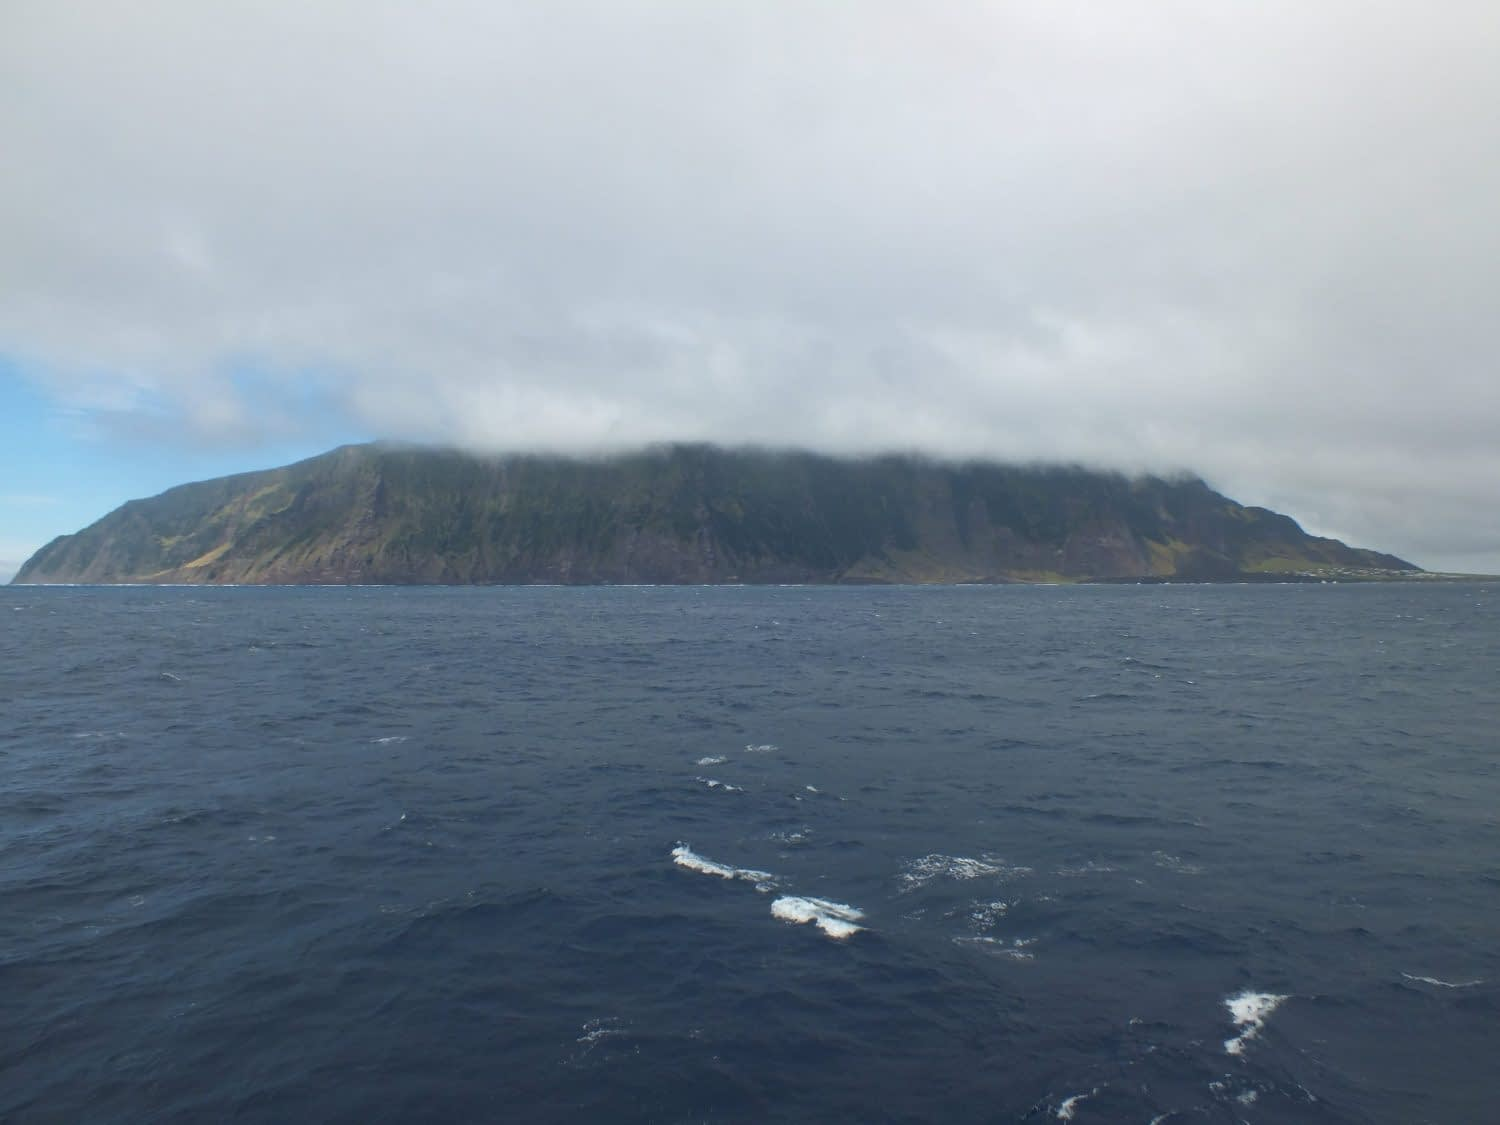 One of the world's biggest sanctuaries for wildlife has just been created around Tristan da Cunha